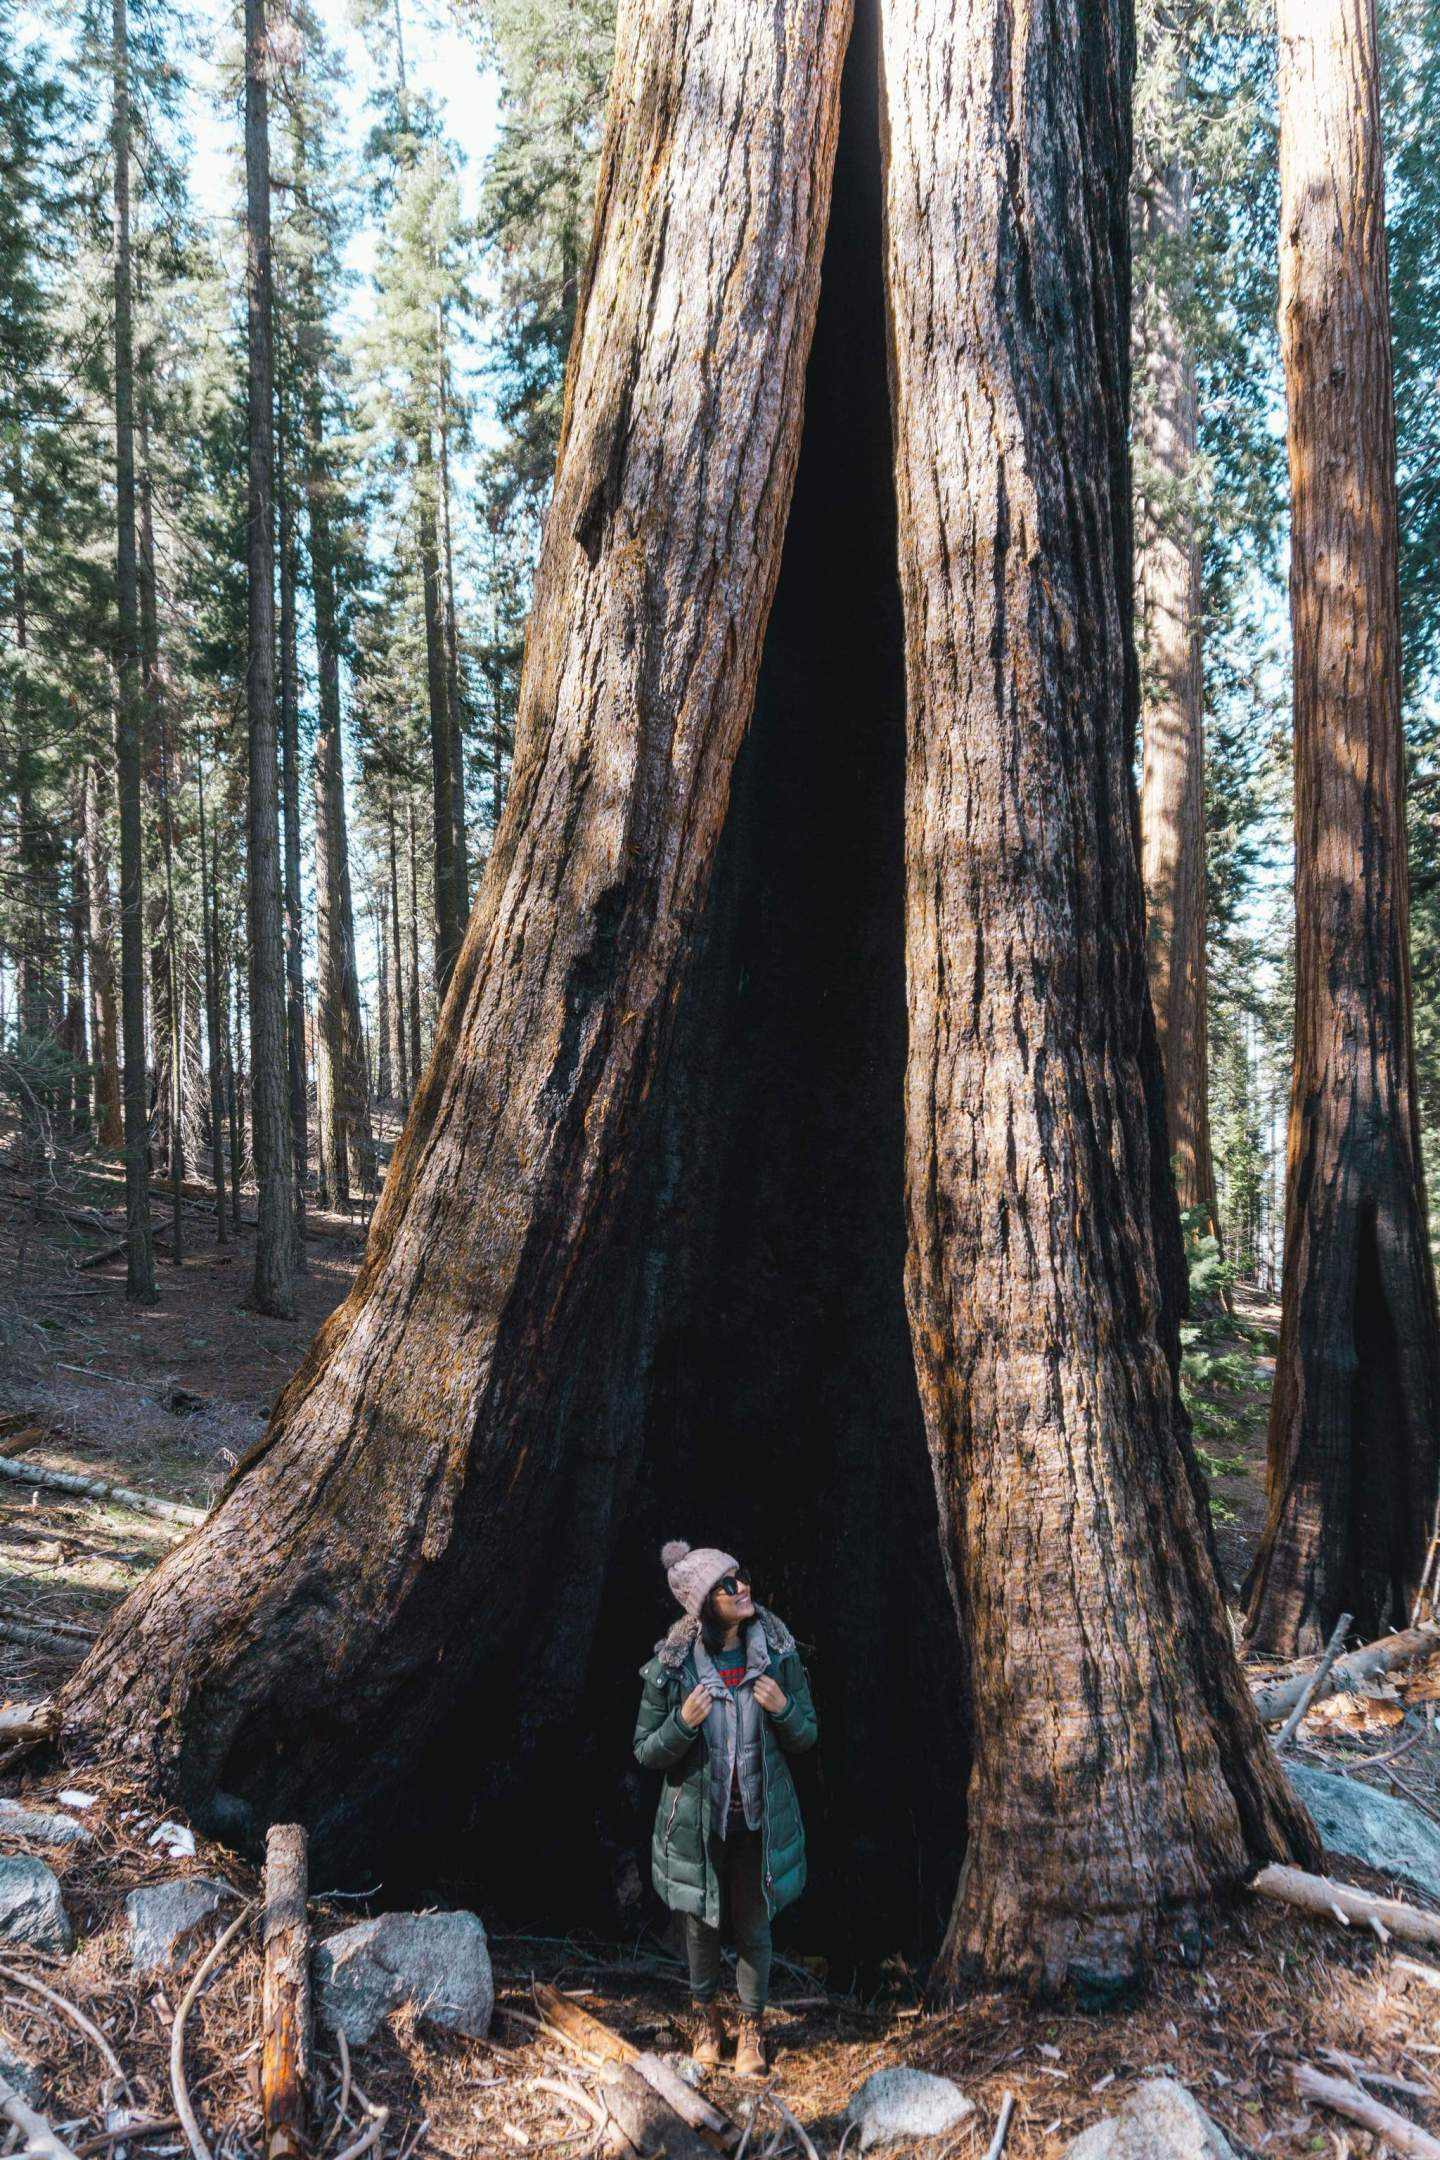 How to spend a weekend in Sequoia National Park